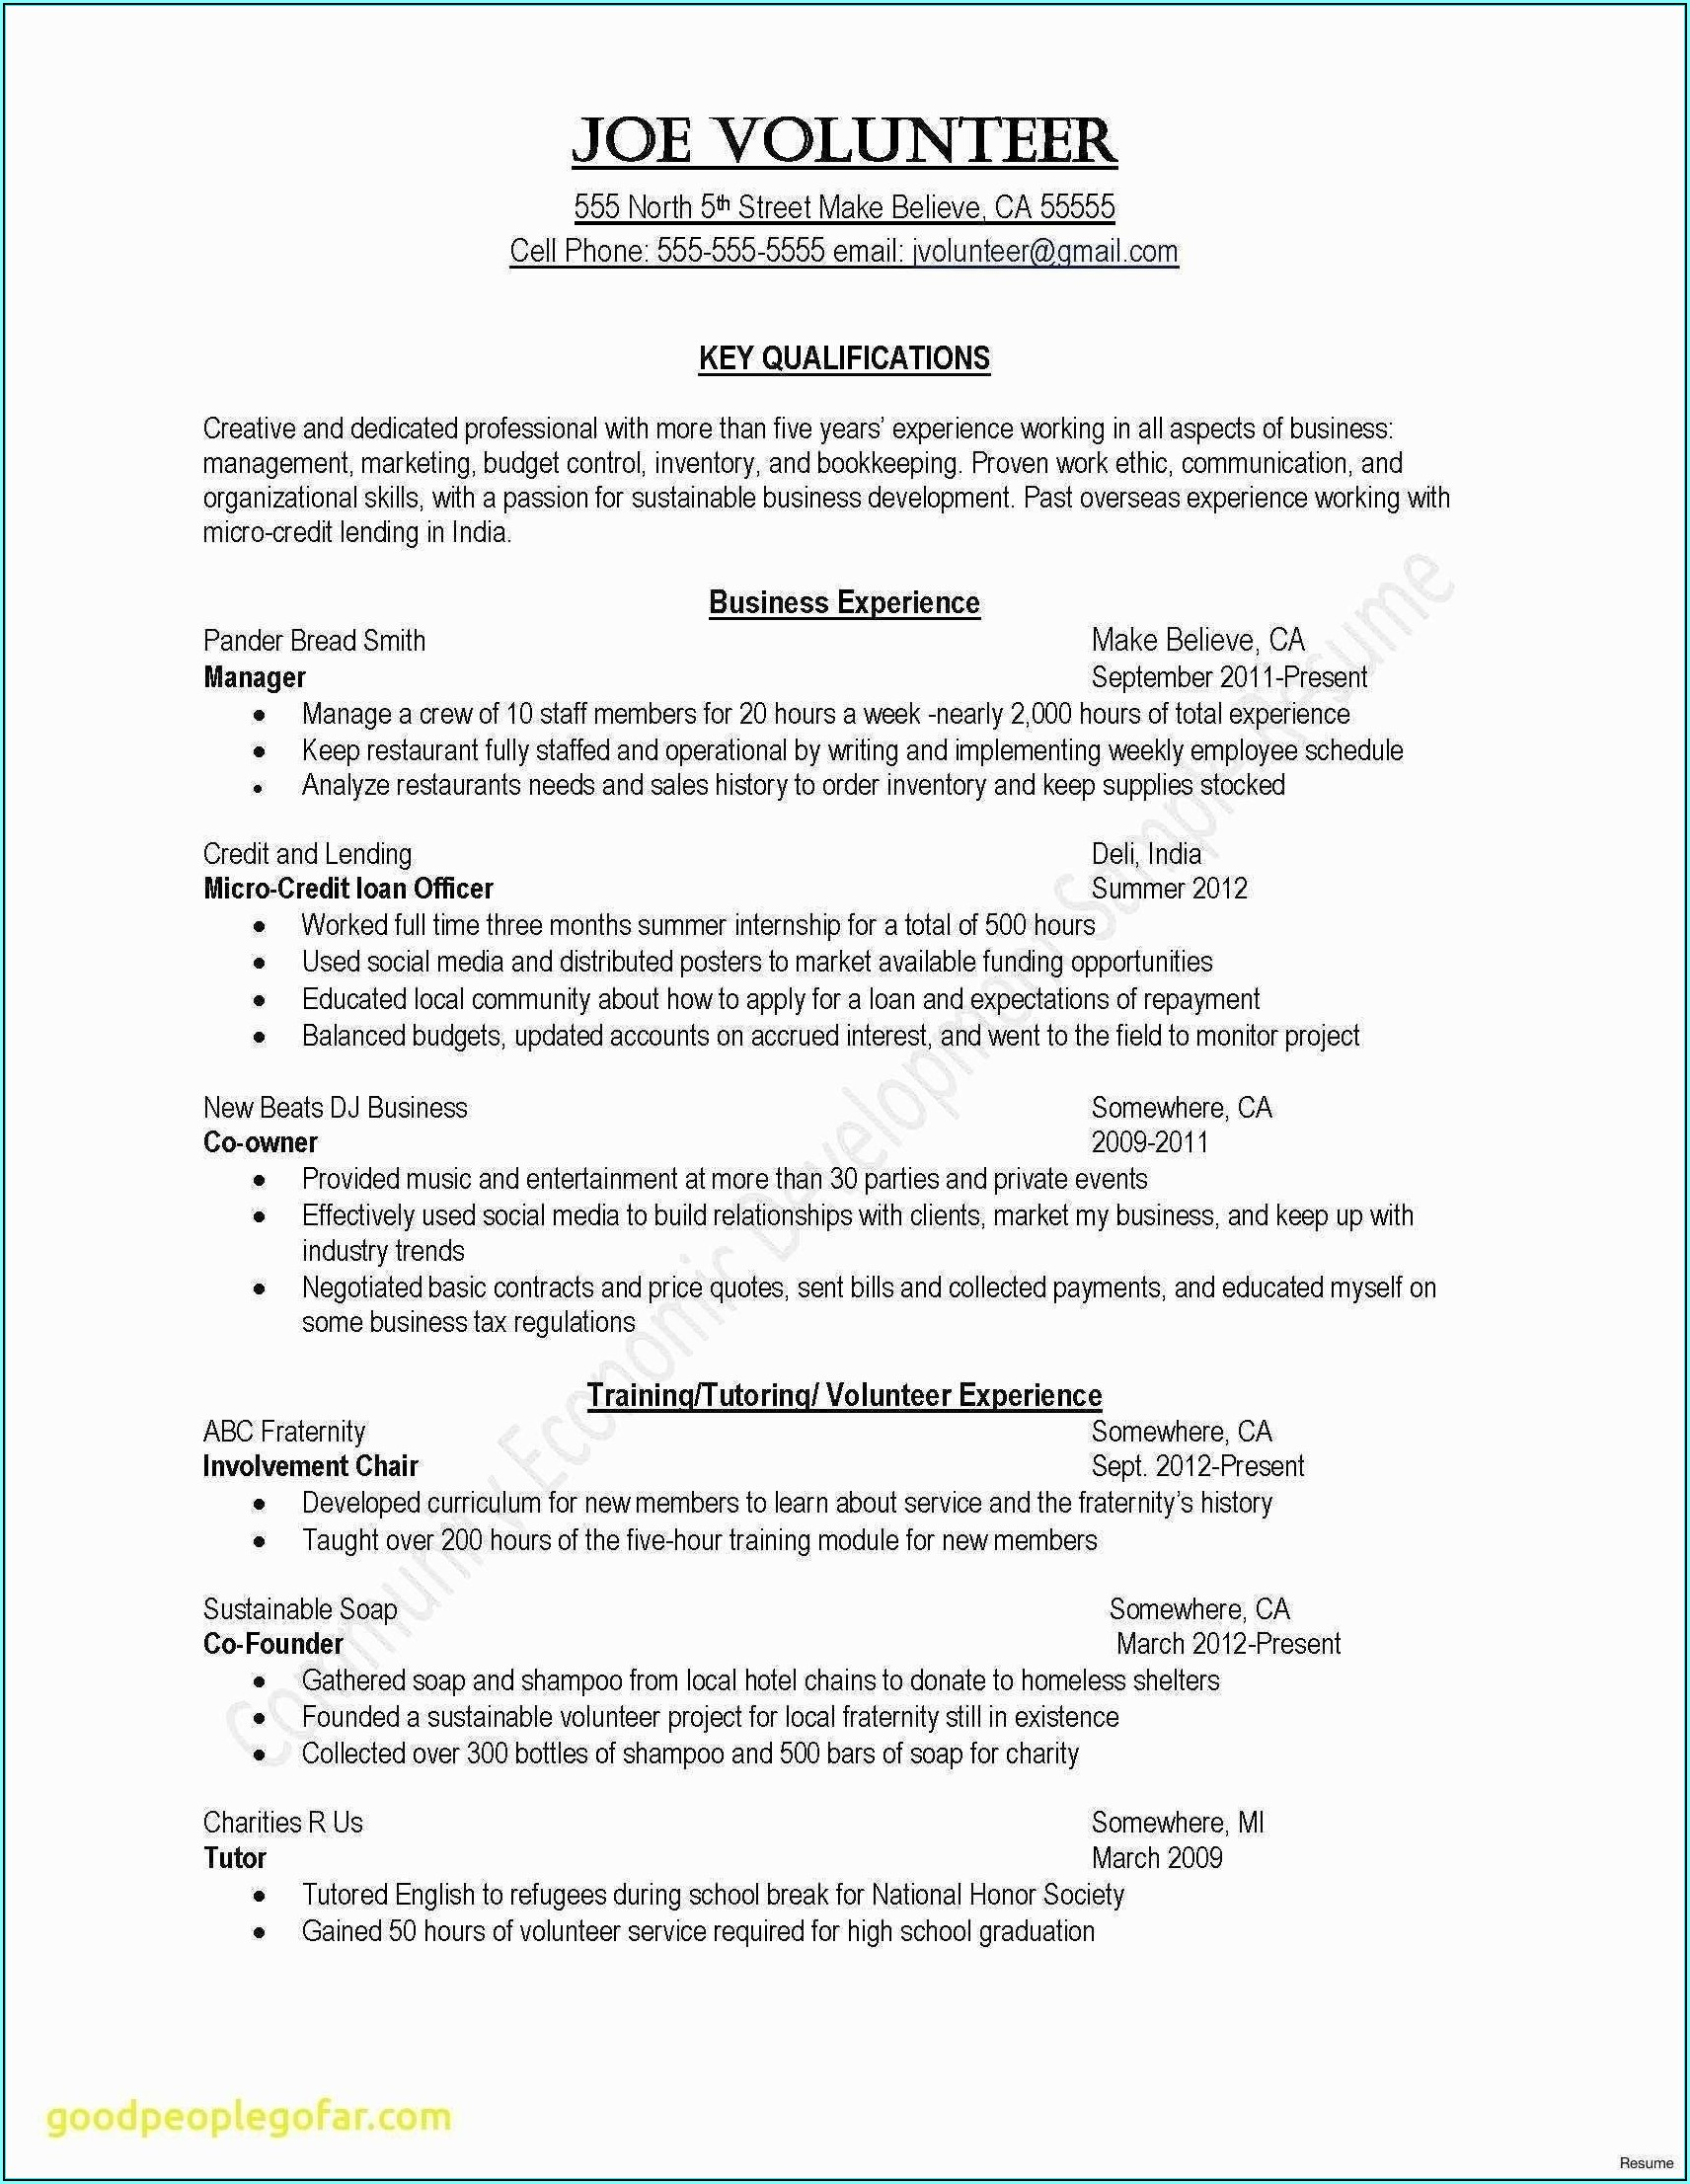 resume writing services in best rapids mi for students professional genius cost rooms Resume Resume Writing Services For Students